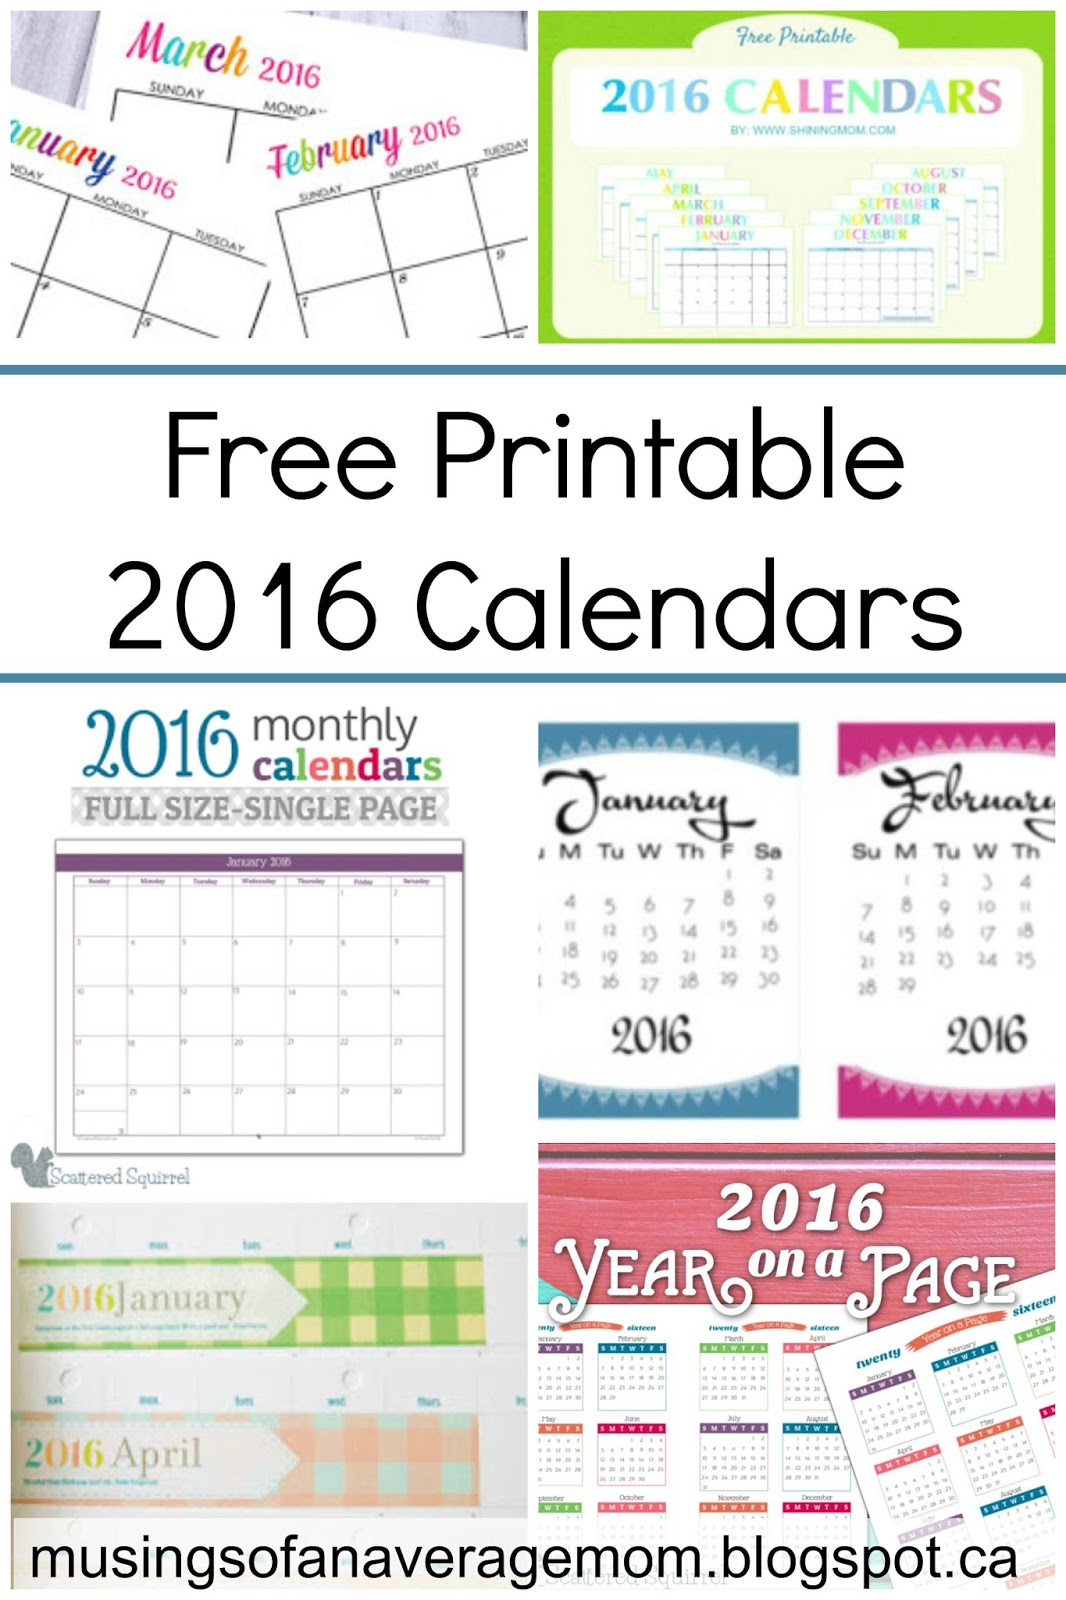 Printable 2016 Date Night Calendar | Calendar Template 2016